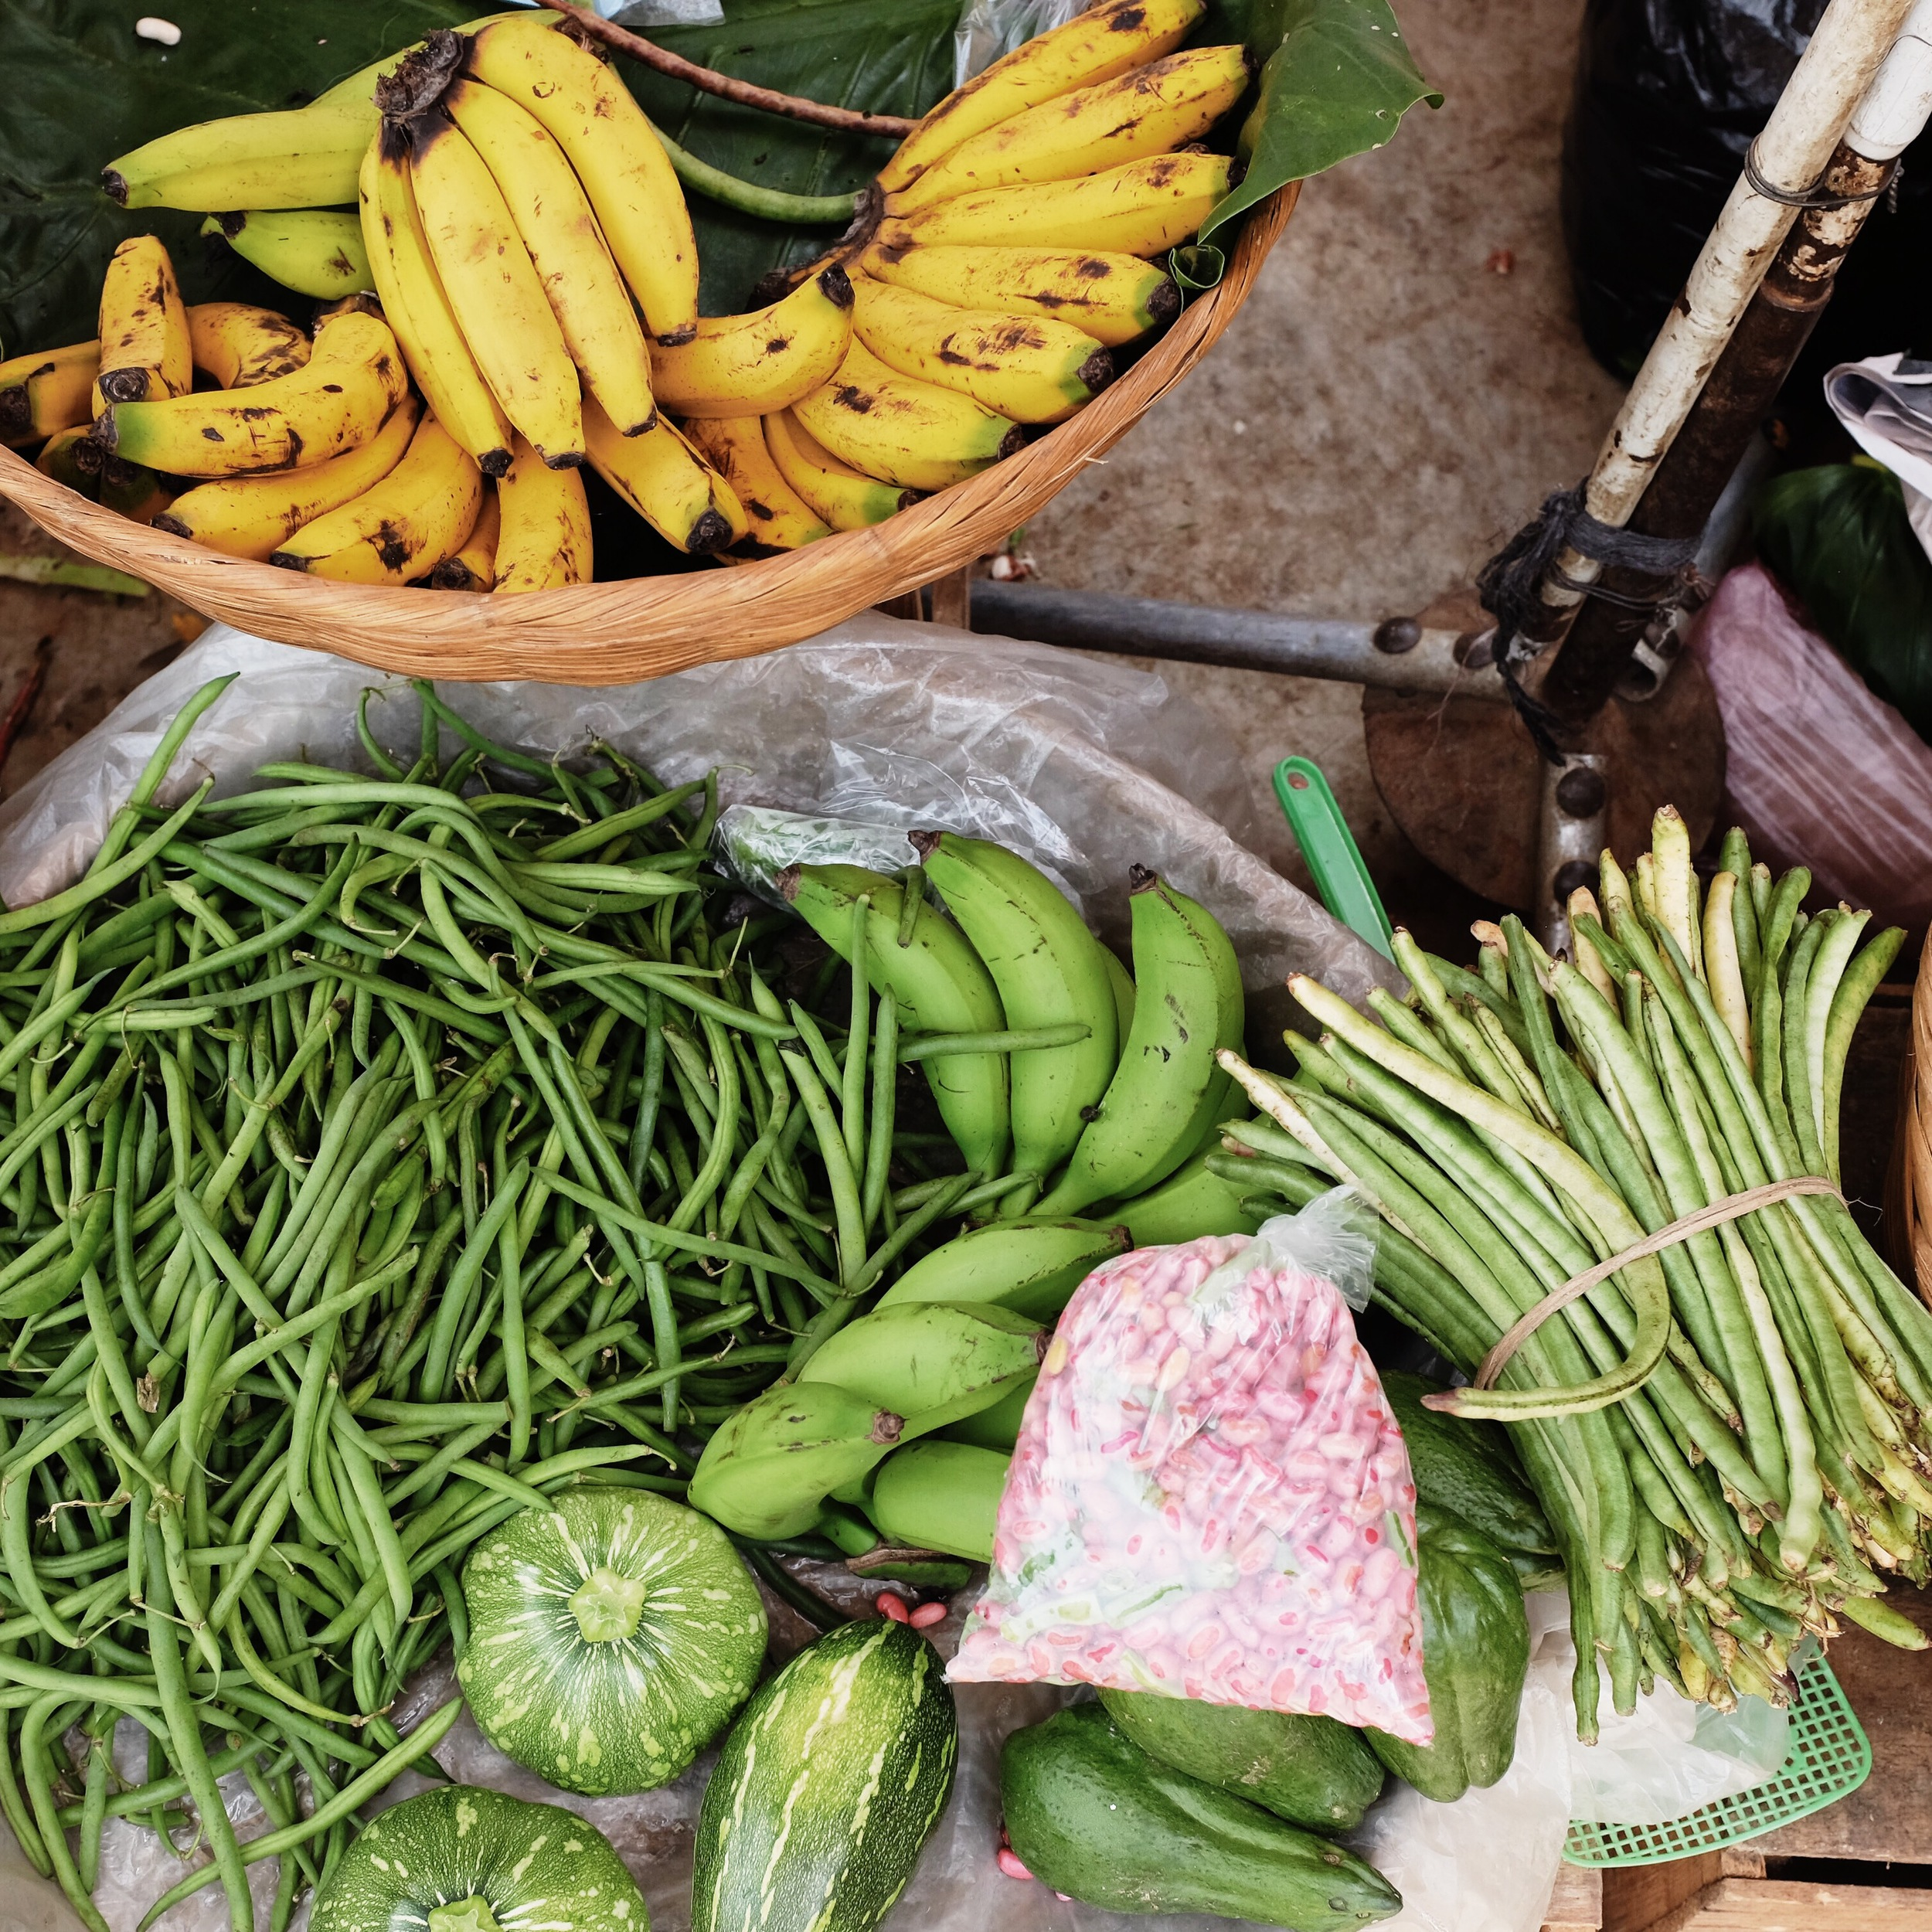 The market at Nahuizalco is a great location to take photos. It is filled to the brim with bright colors, produce, and activity.